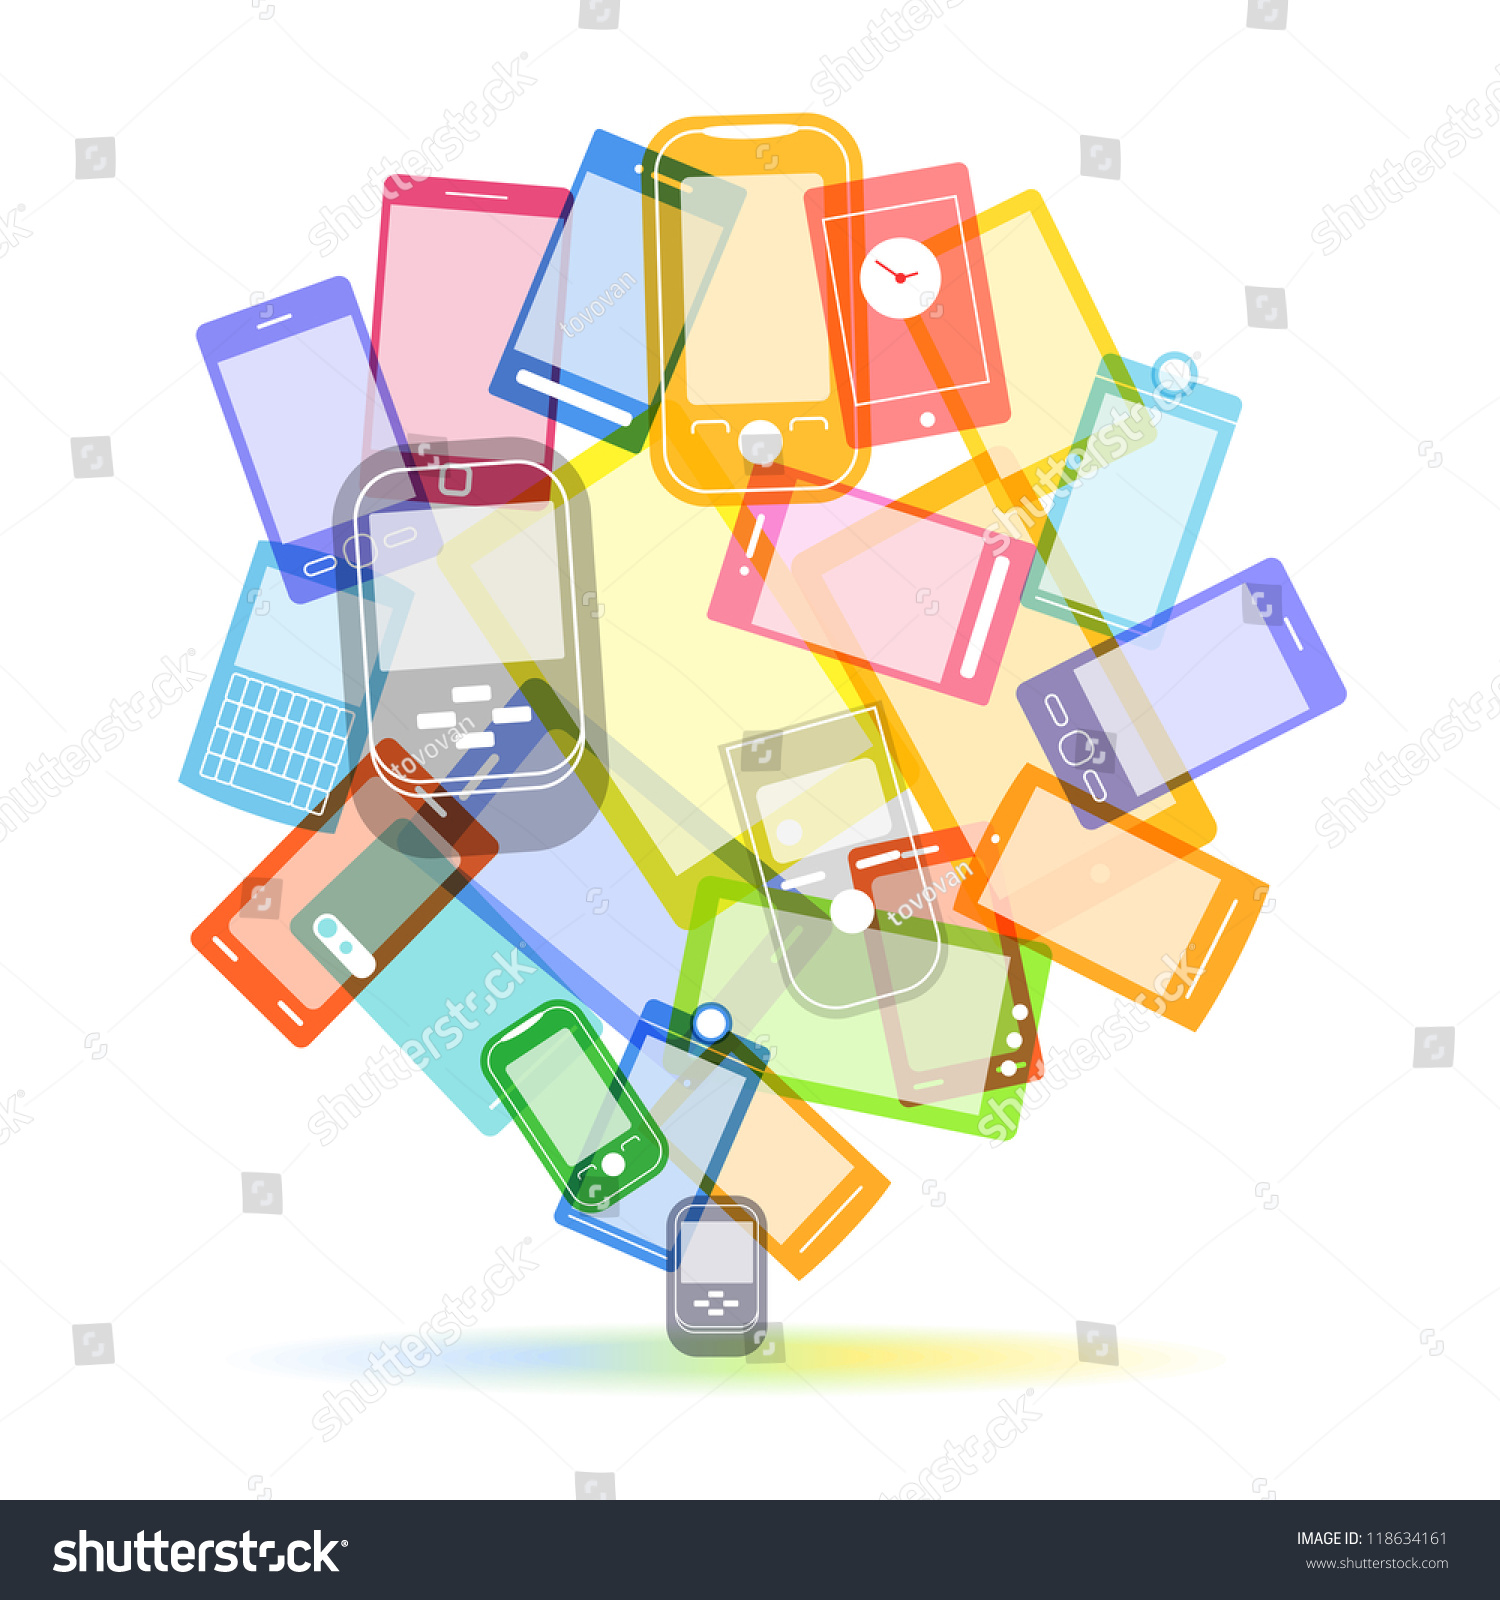 abstract color speech cloud modern mobile stock vector   - abstract color speech cloud of modern mobile phones